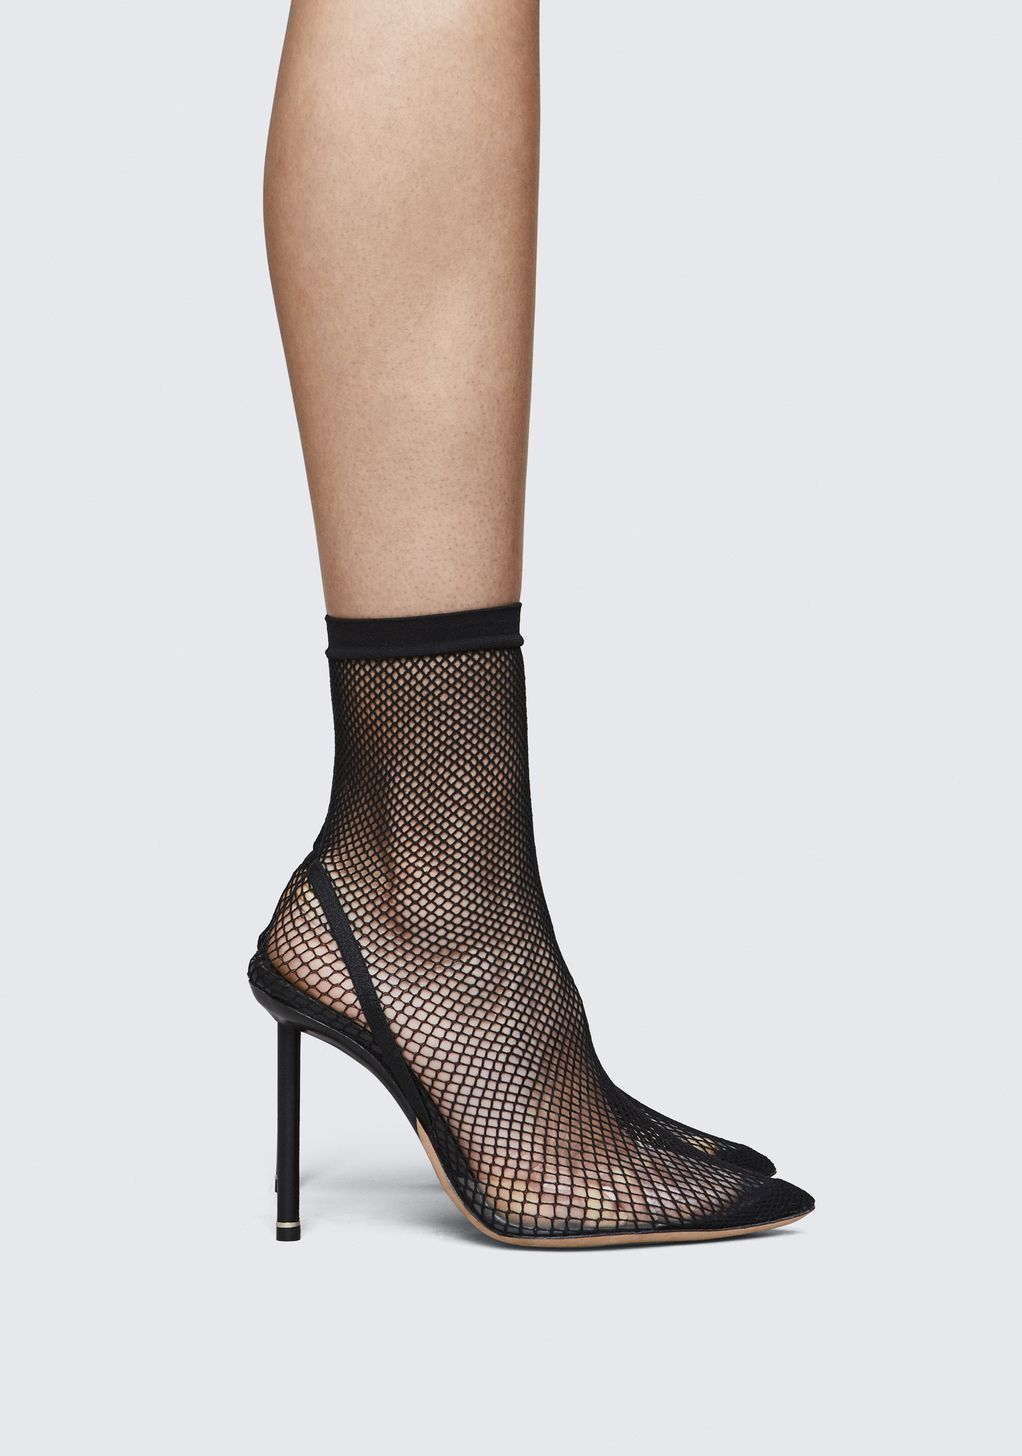 Alexander Wang Kori Ankle Booties - Shopbop